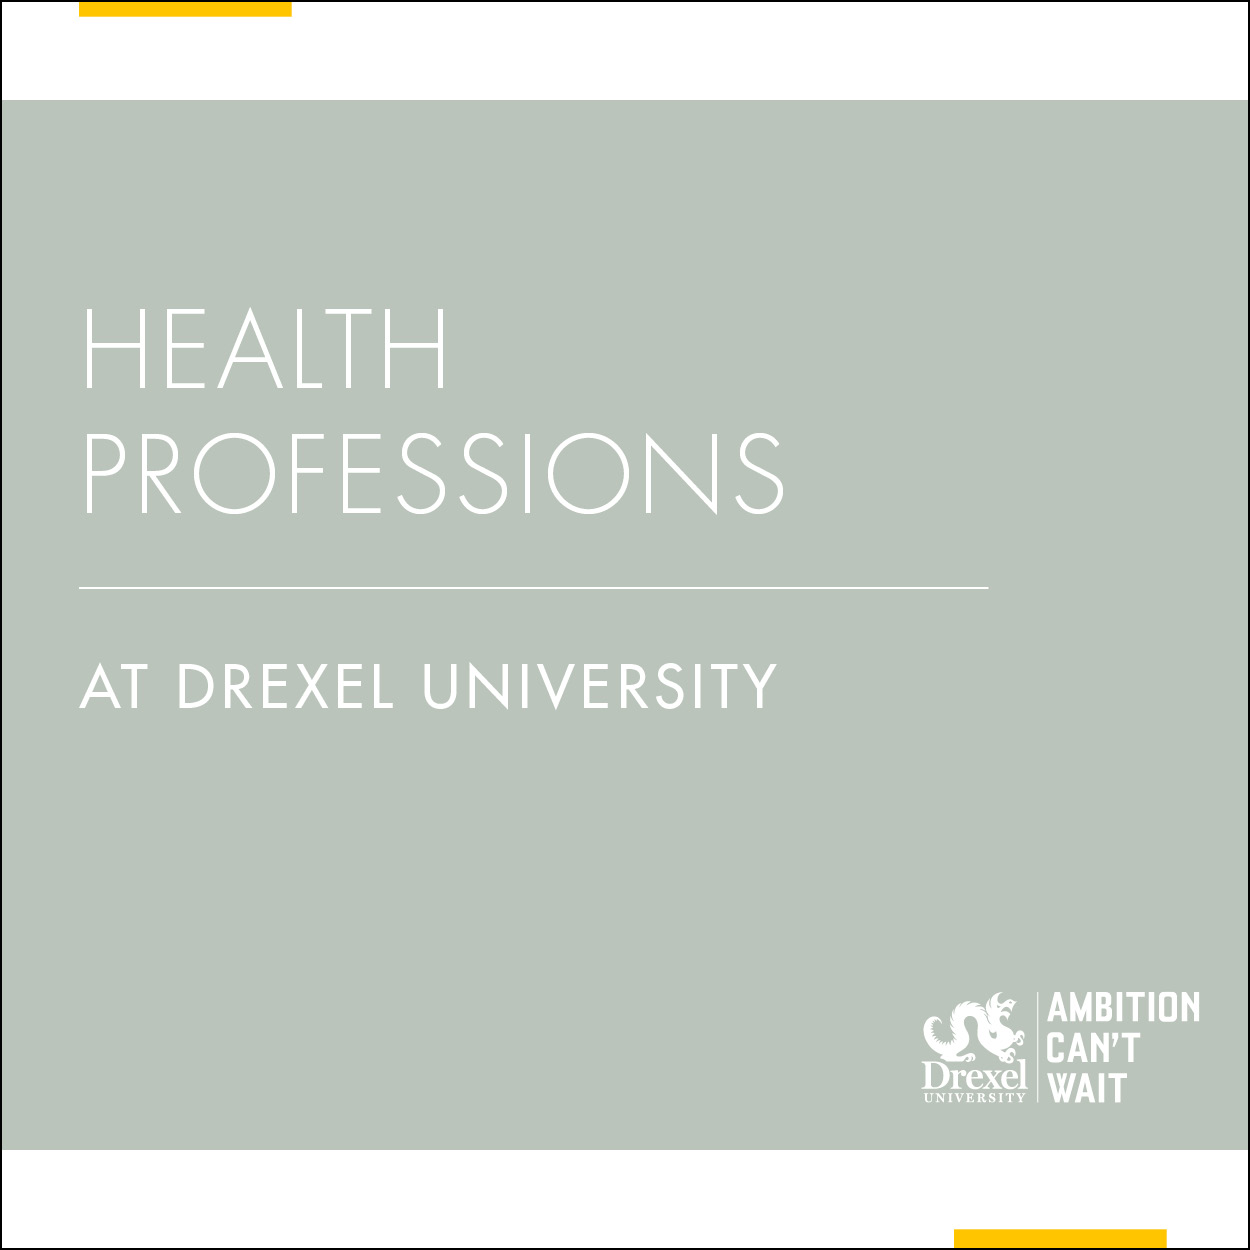 Health Professions at Drexel University